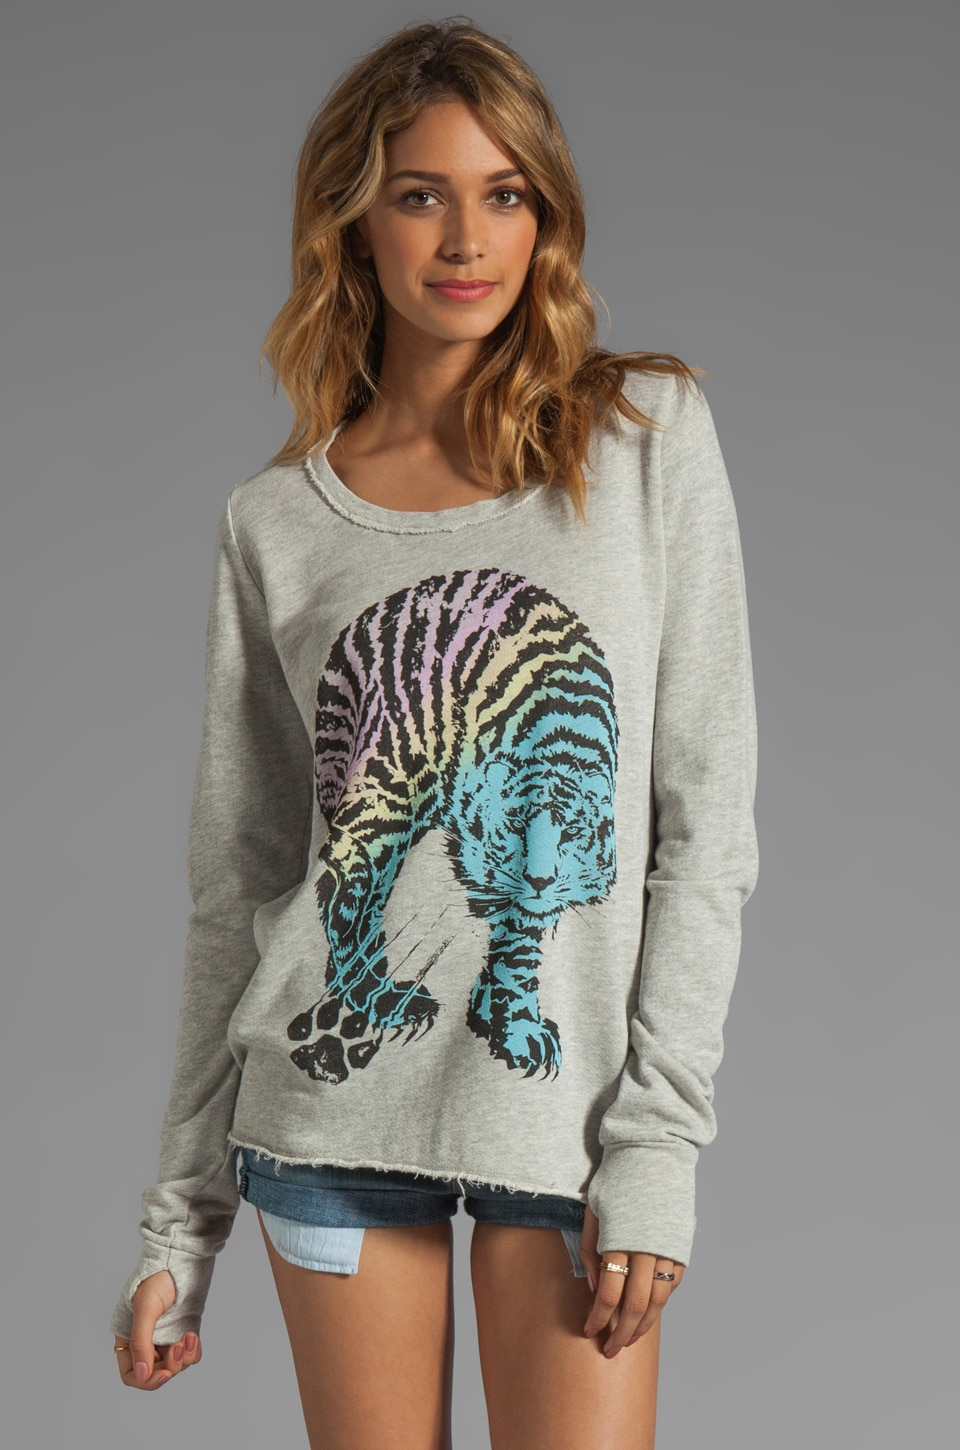 Lauren Moshi Kallie Color Tiger Thumb Hole Sweatshirt in Heather Grey